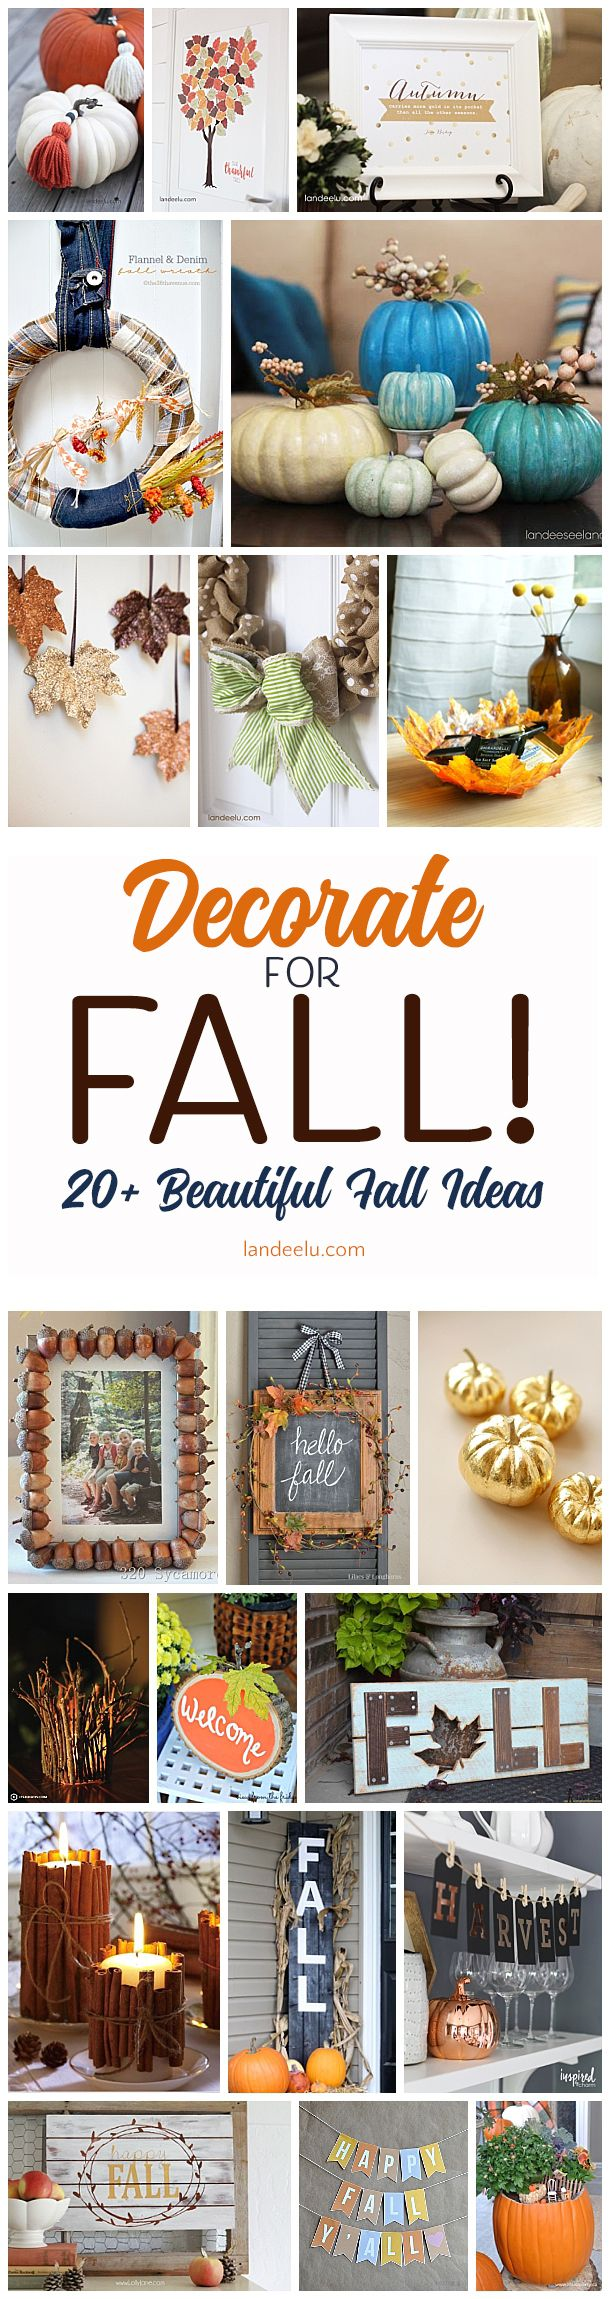 DIY Fall Decorations for Your Home 748